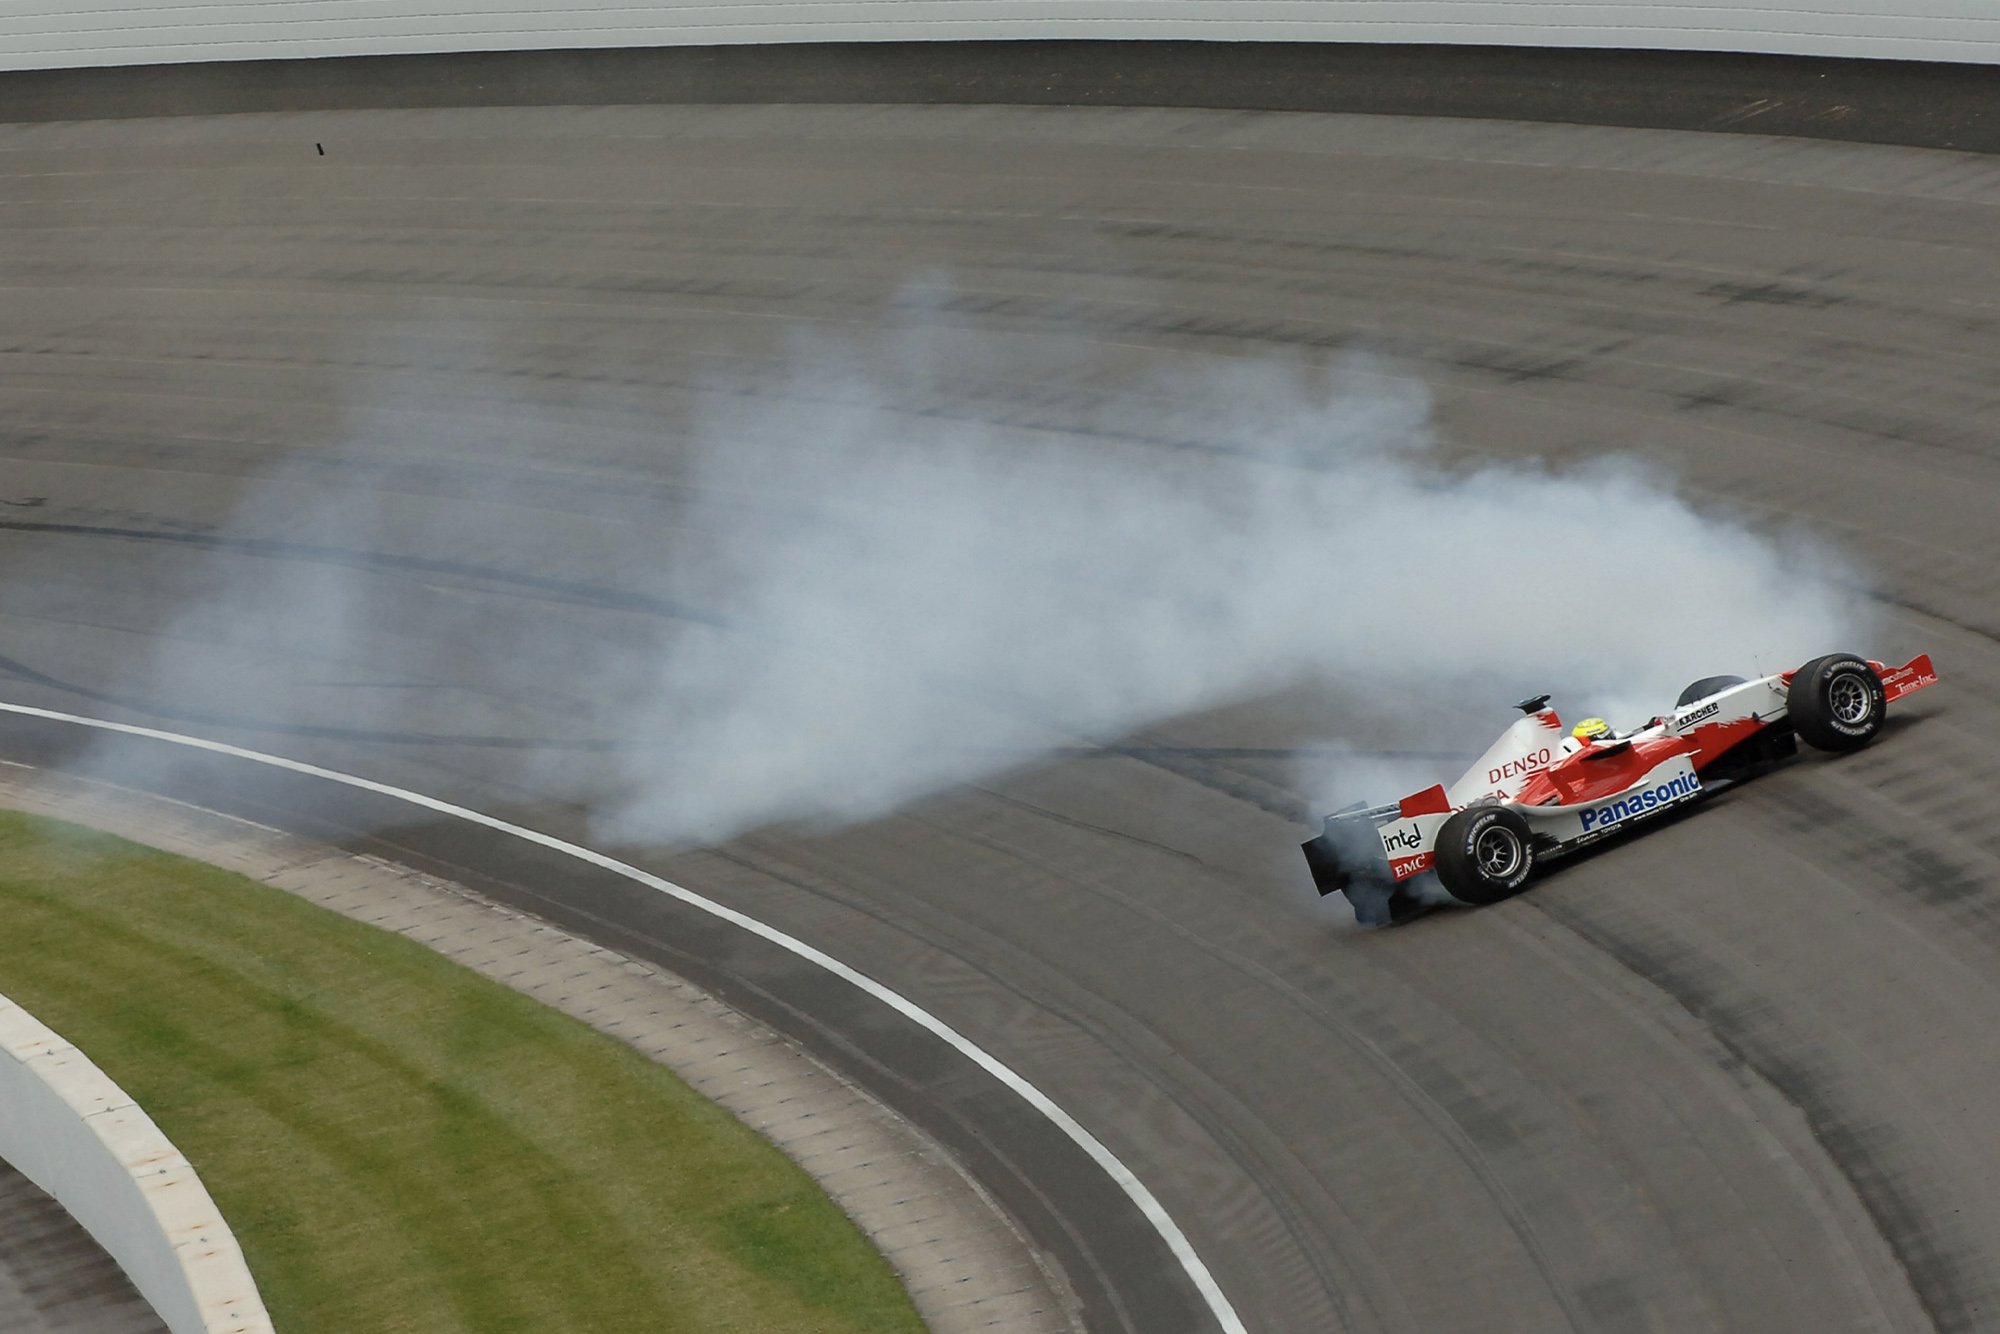 Ralf Schumacher crashes in practice for the 2005 US Grand Prix